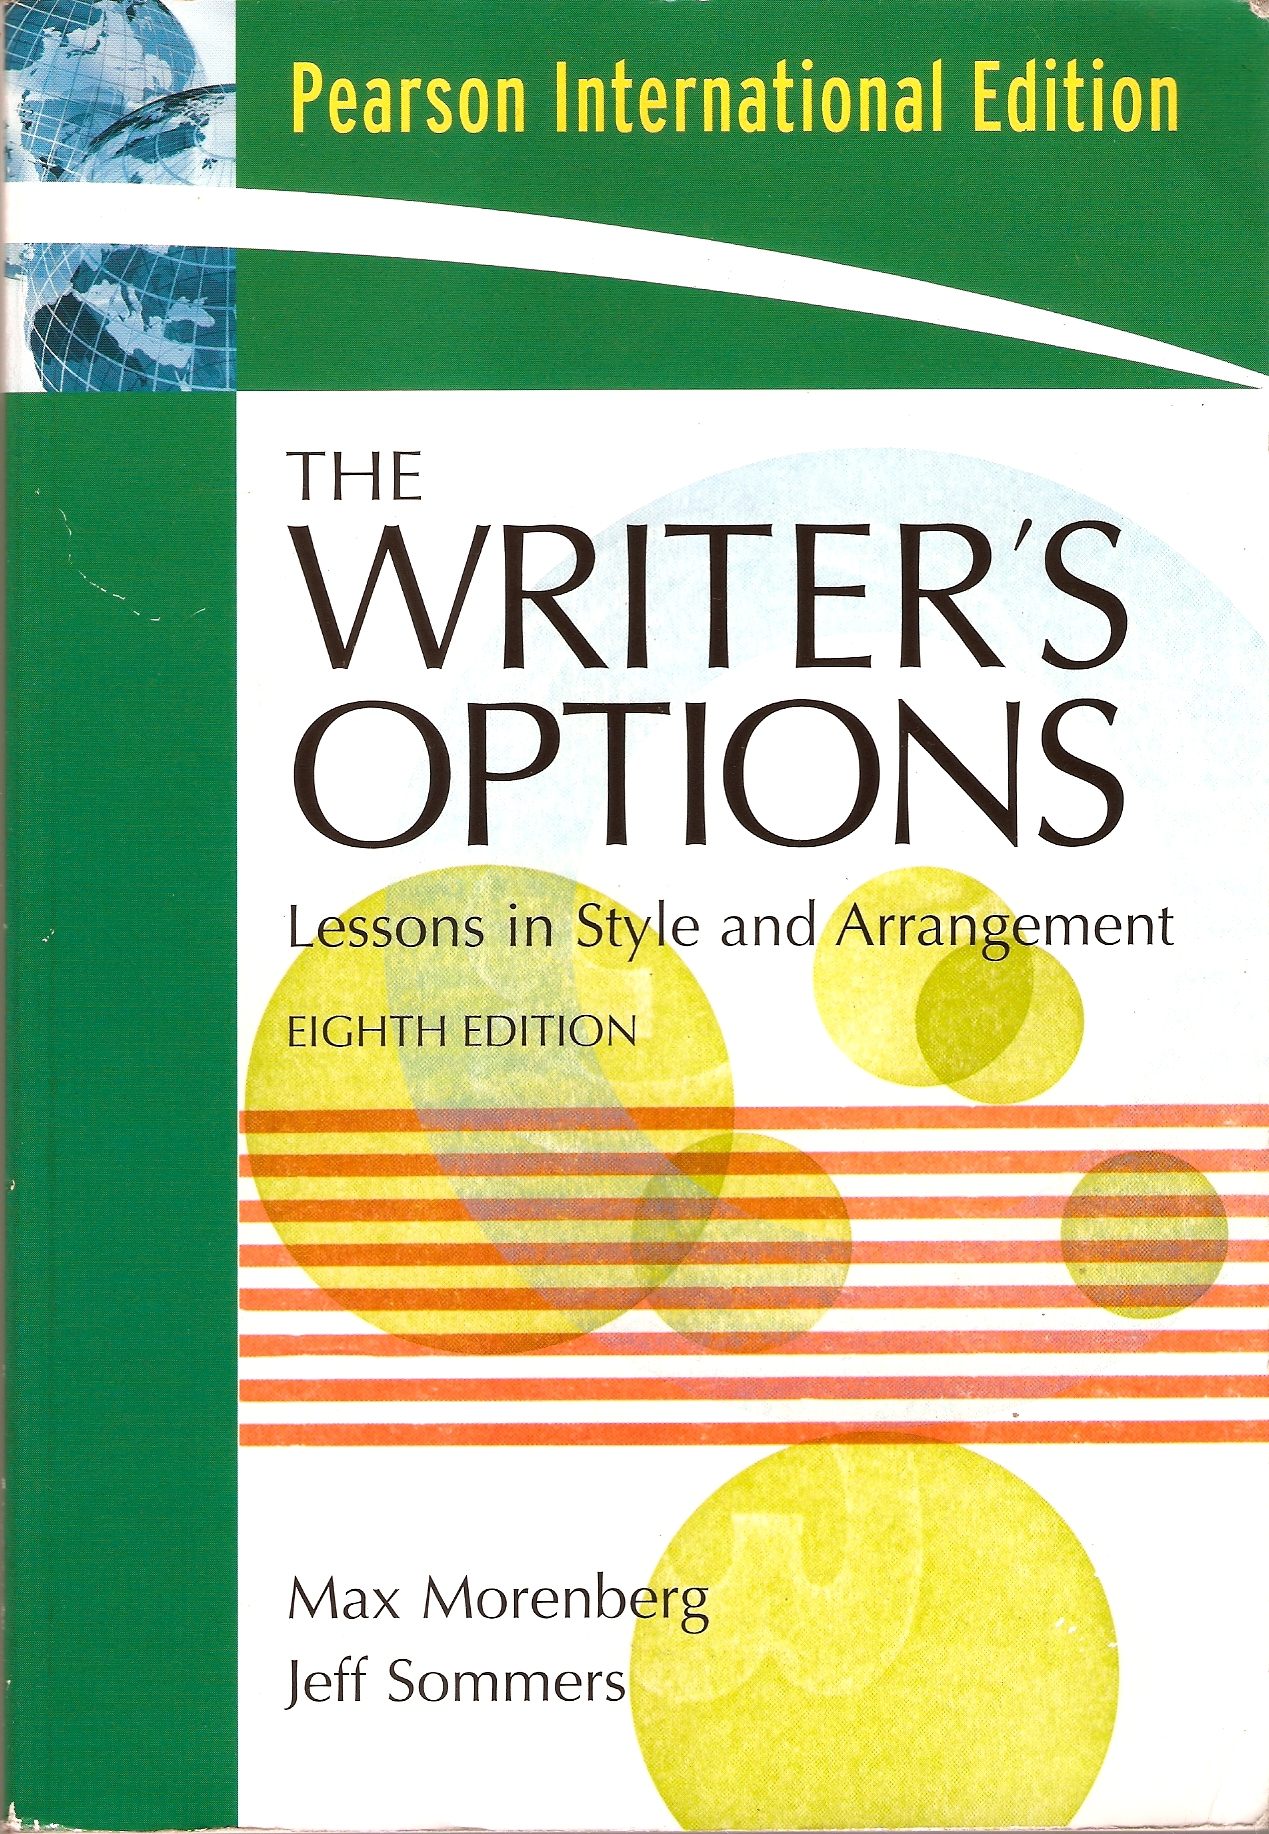 The Writer's Options